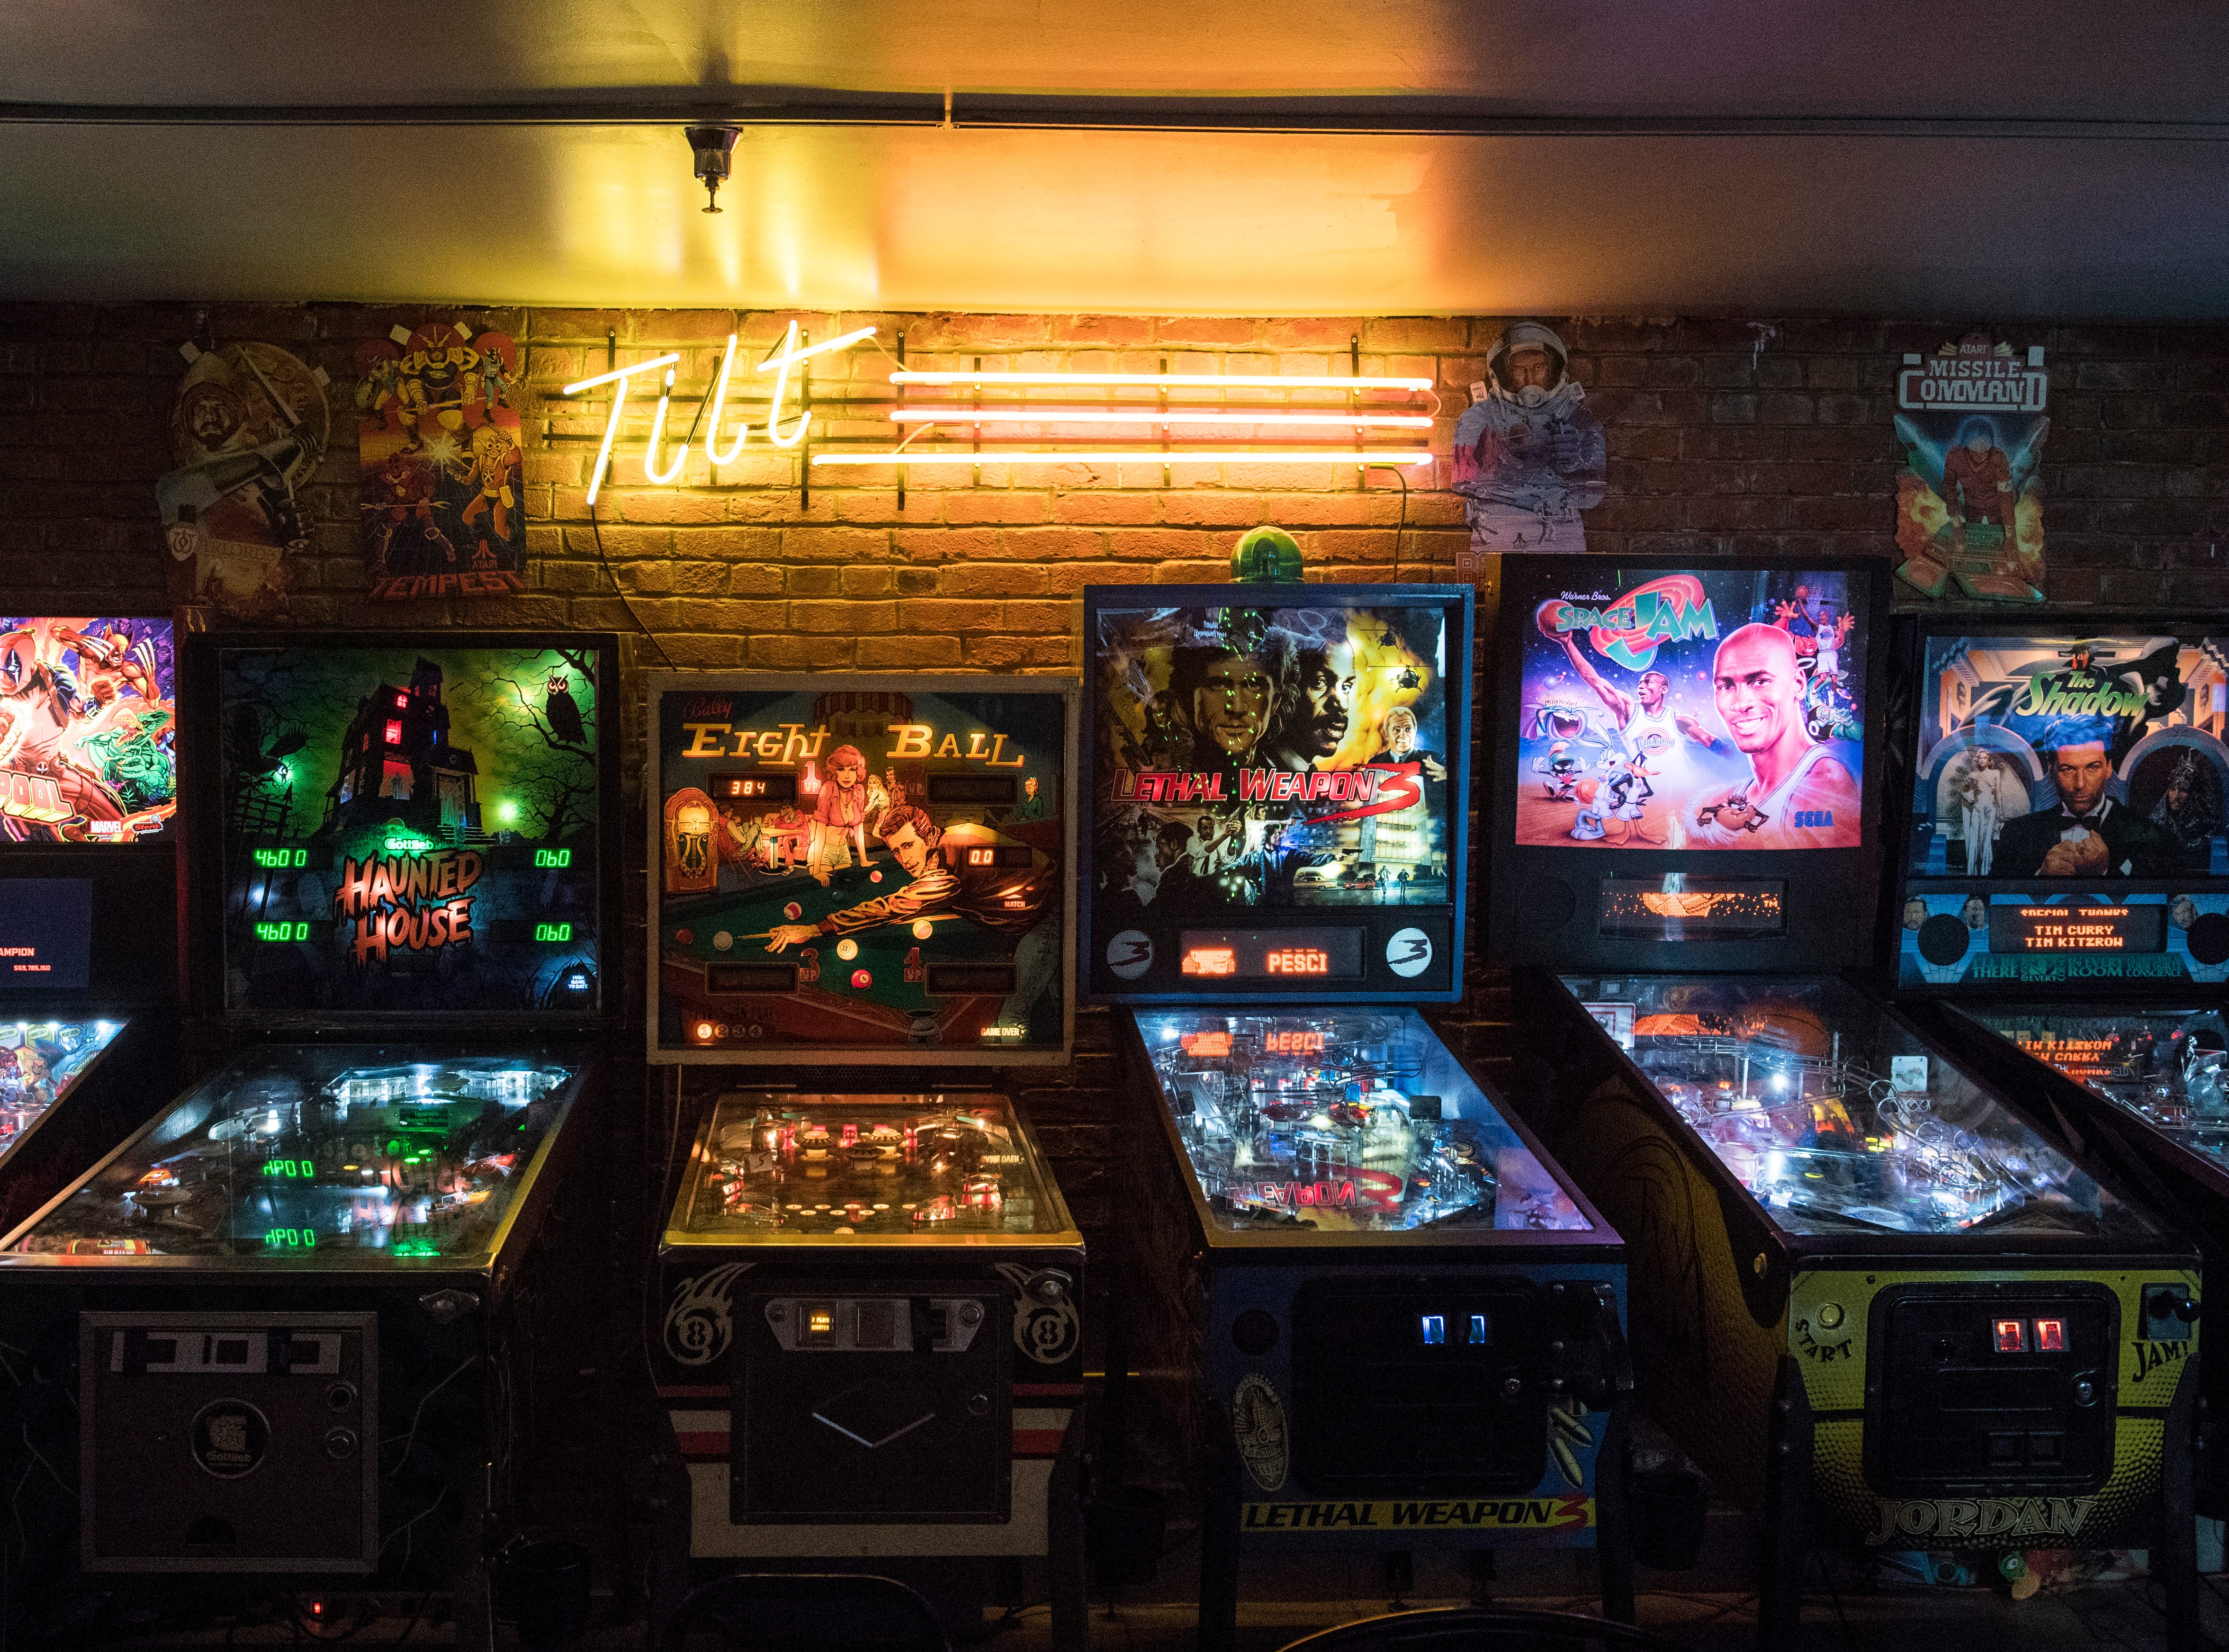 Pinball machines line the back wall of High Score Saloon.